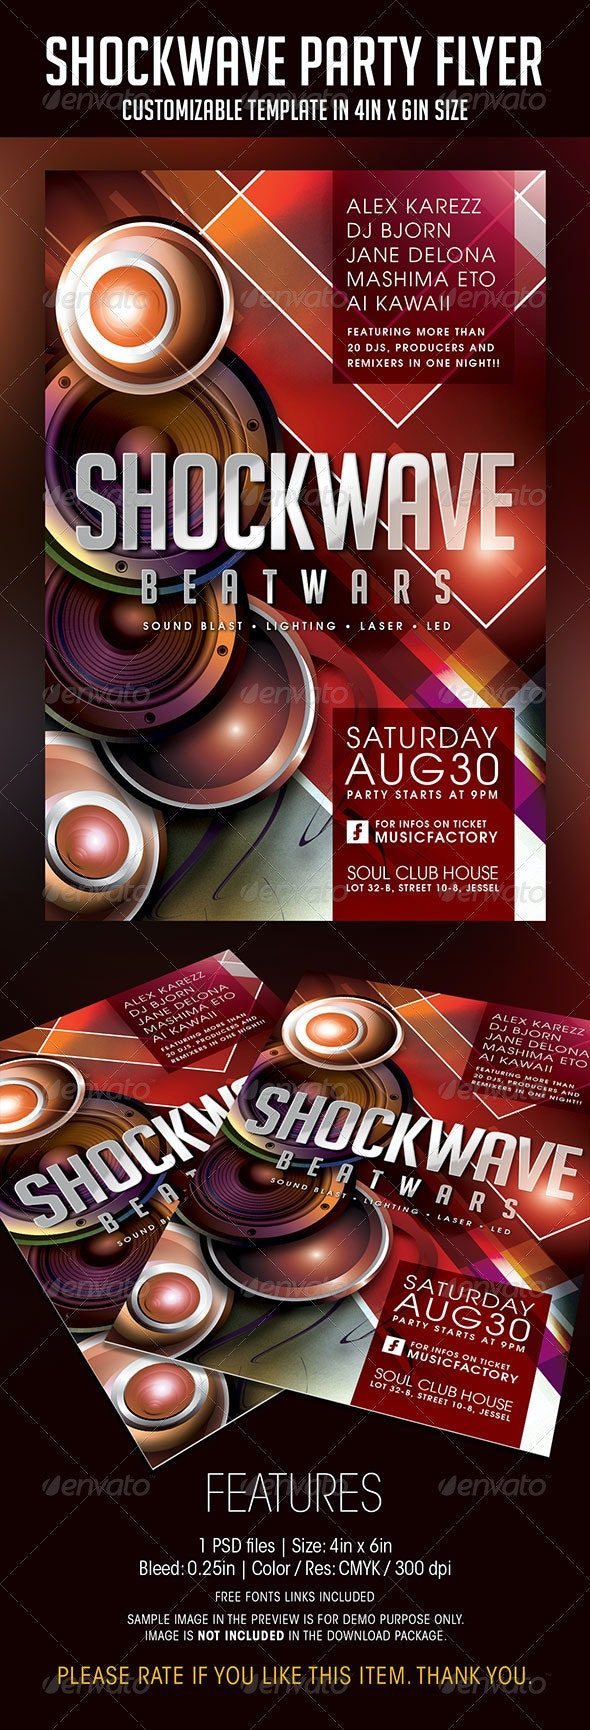 Shockwave Party Flyer - Clubs & Parties Events